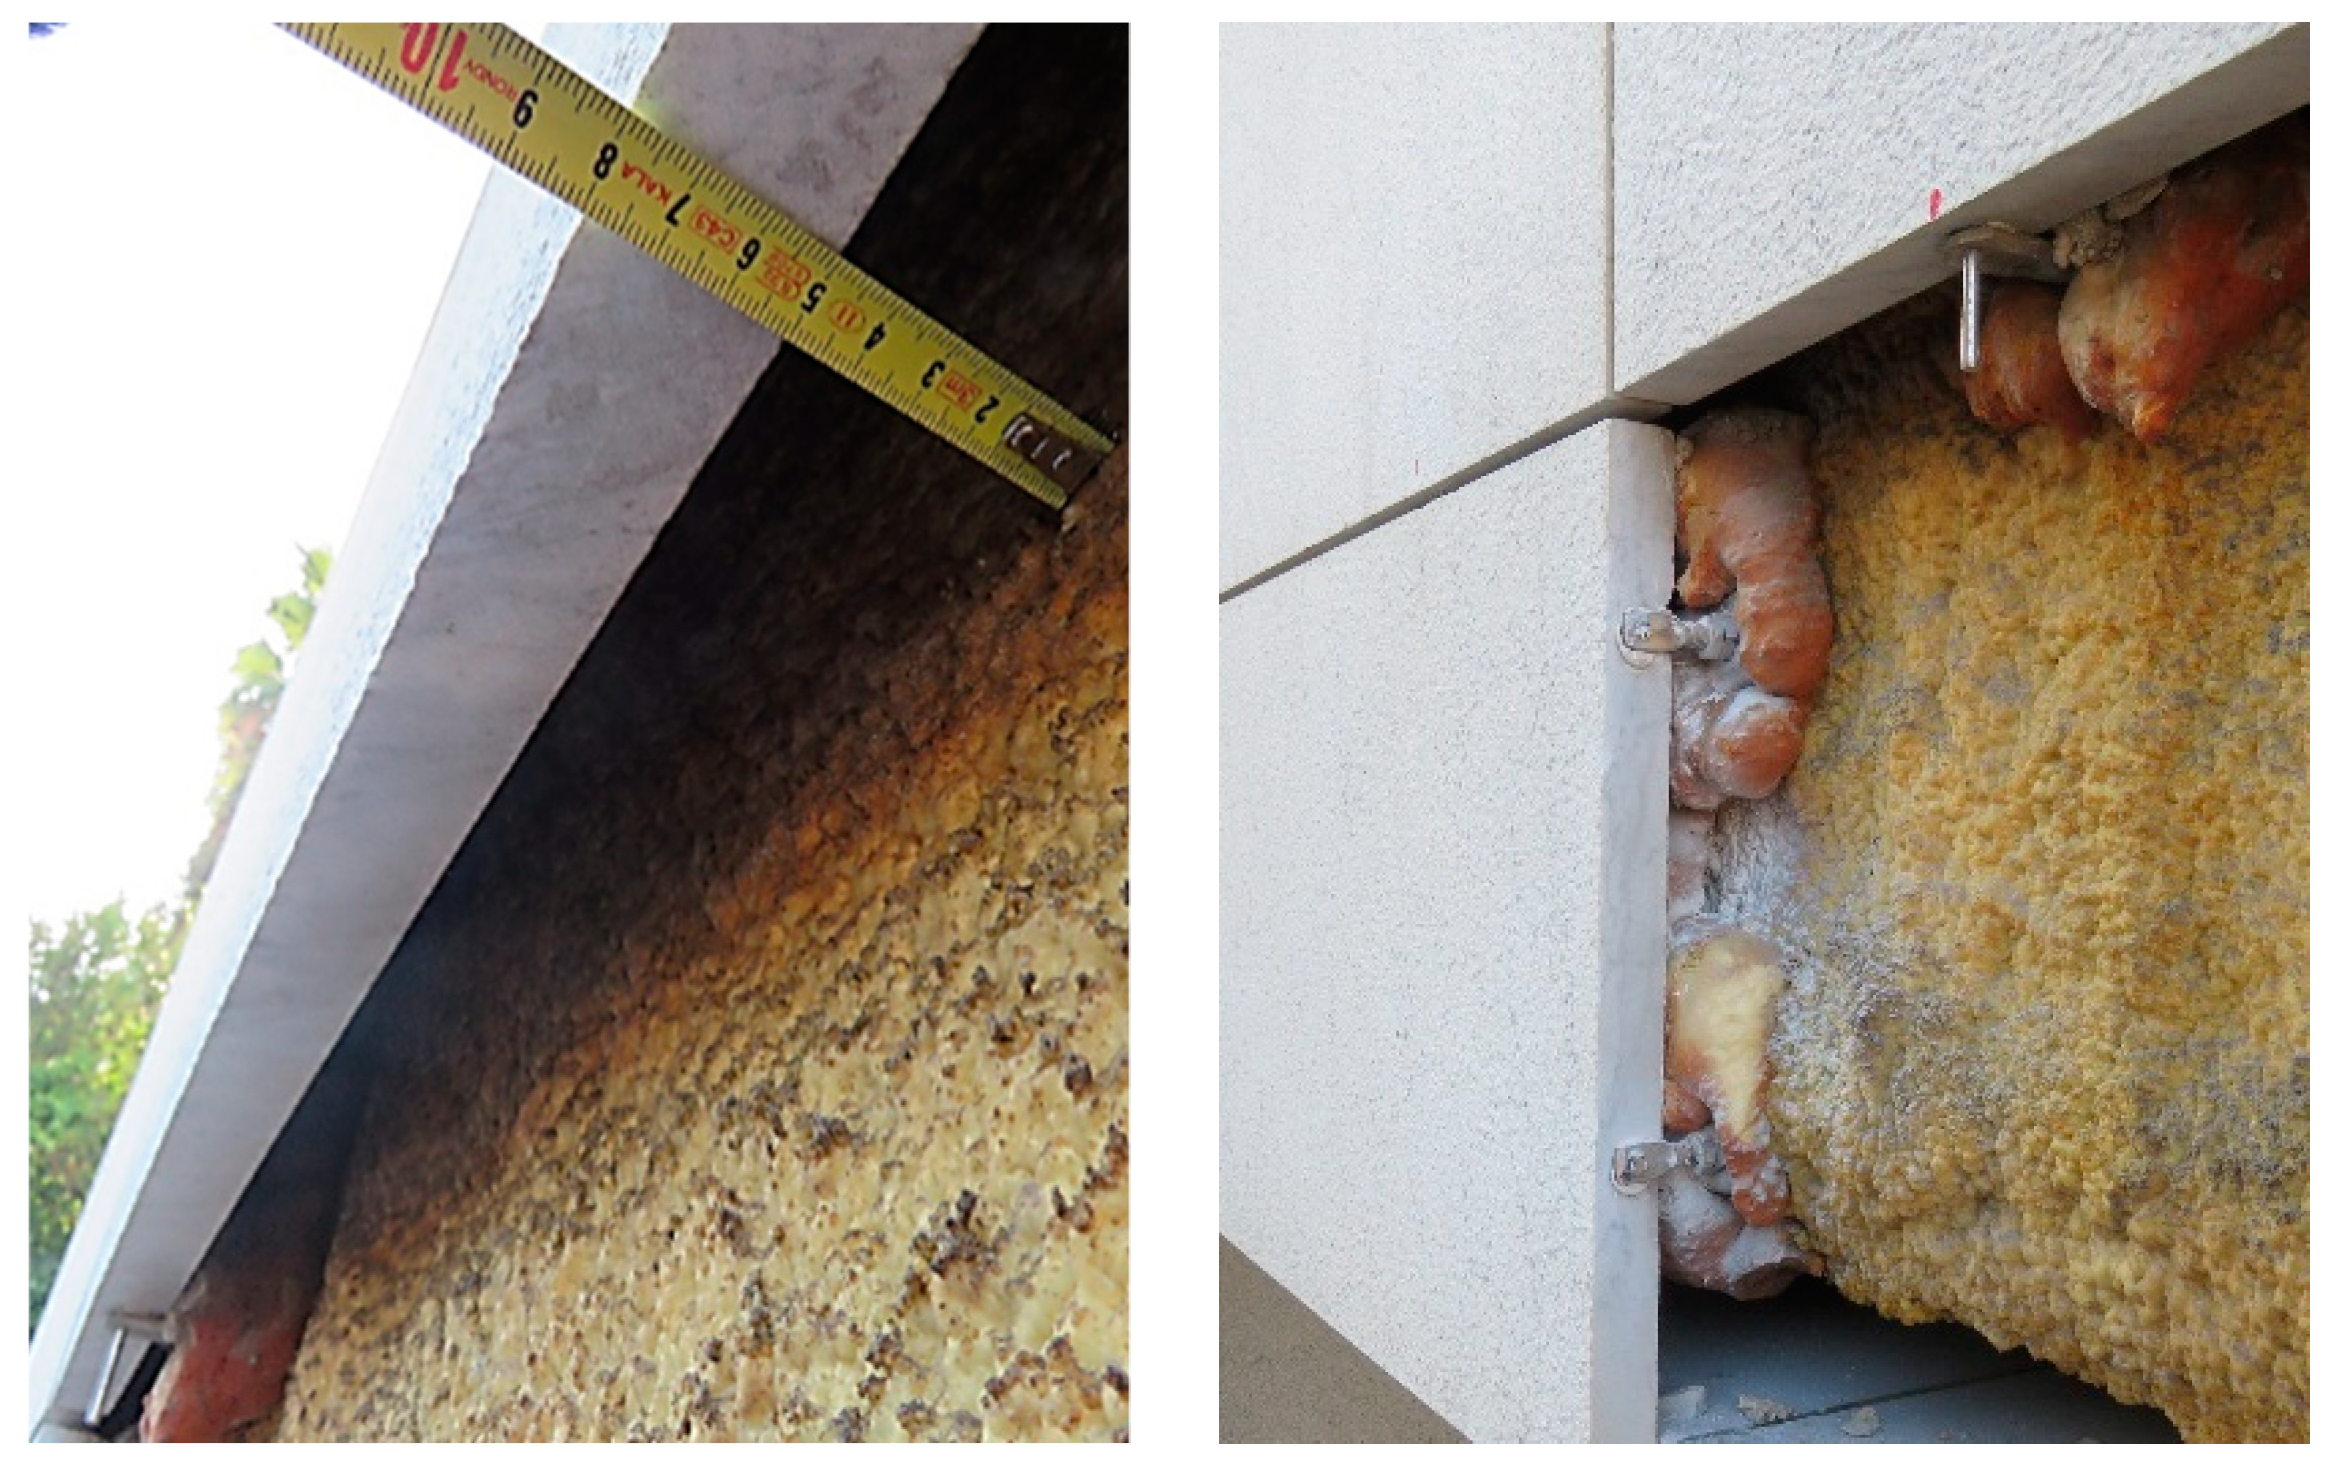 Buildings Free Full Text Durability Of Stone Cladding In Buildings A Case Study Of Marble Slabs Affected By Bowing Html